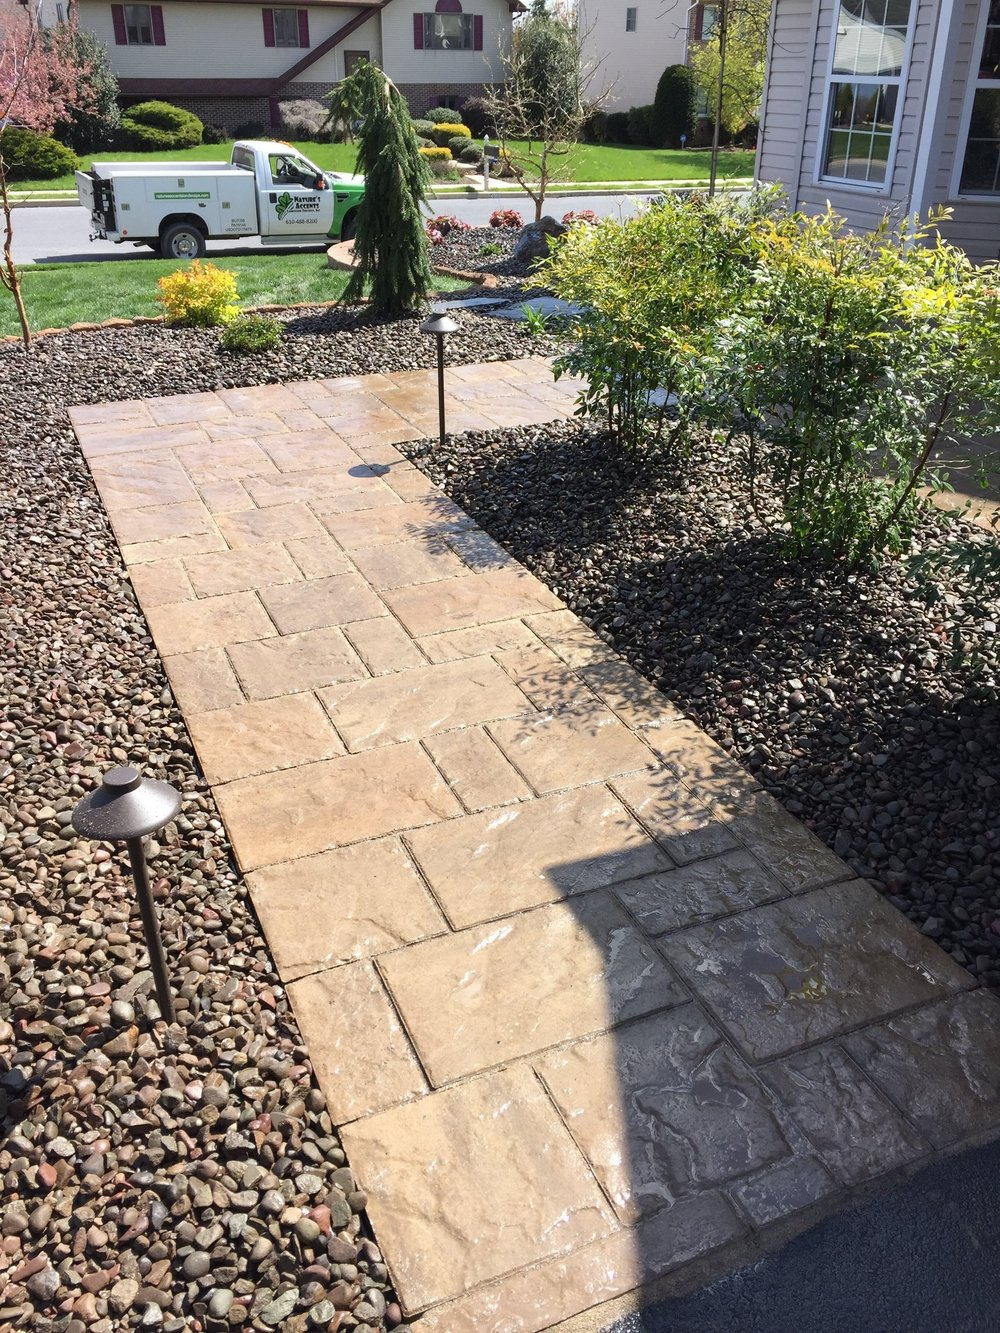 Professional landscape pavers in Wayne Township, PA